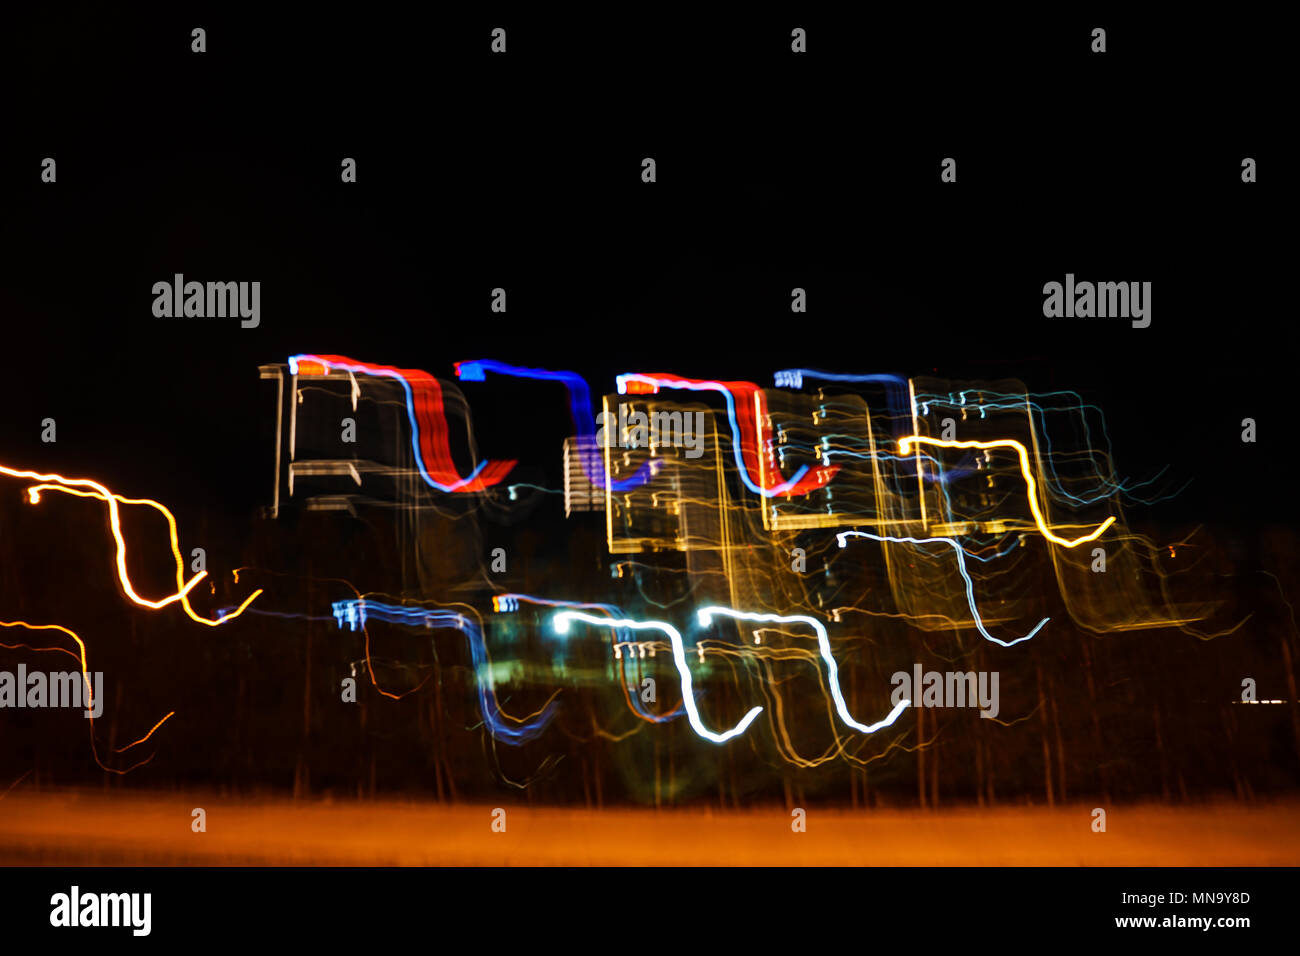 Multi colored abstract light painting at night tme as a background - Stock Image